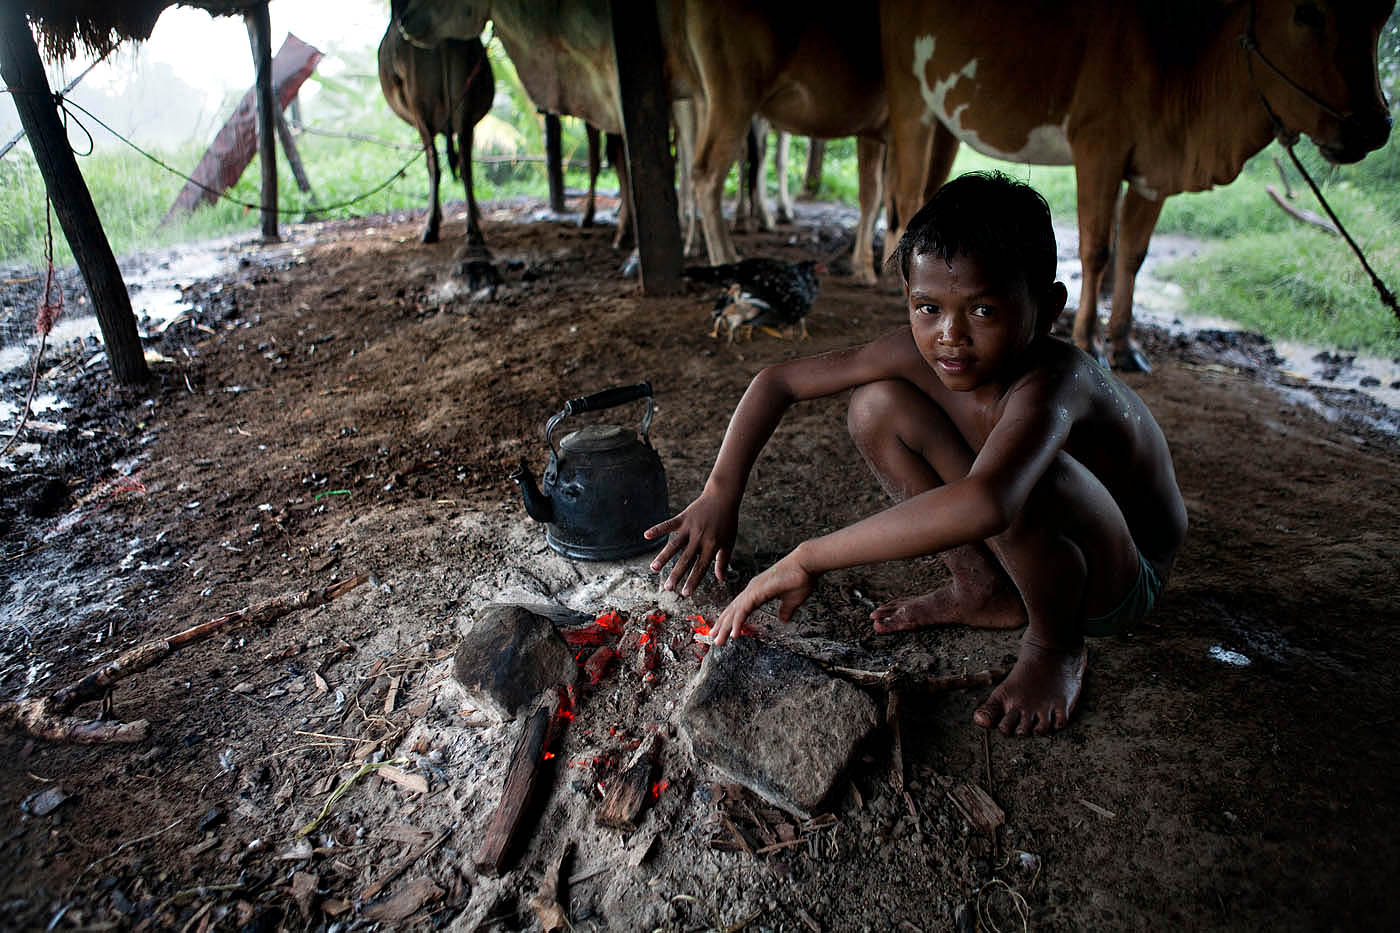 Caught outside while tending his herd of cows, a young boy warms himself next to the cooking fire of his family's home in northwestern Cambodia on September 18, 2009.  Banteay Meanchey Province, a long-time refuge of the Khmer Rouge, is still undergoing land-mine removal.